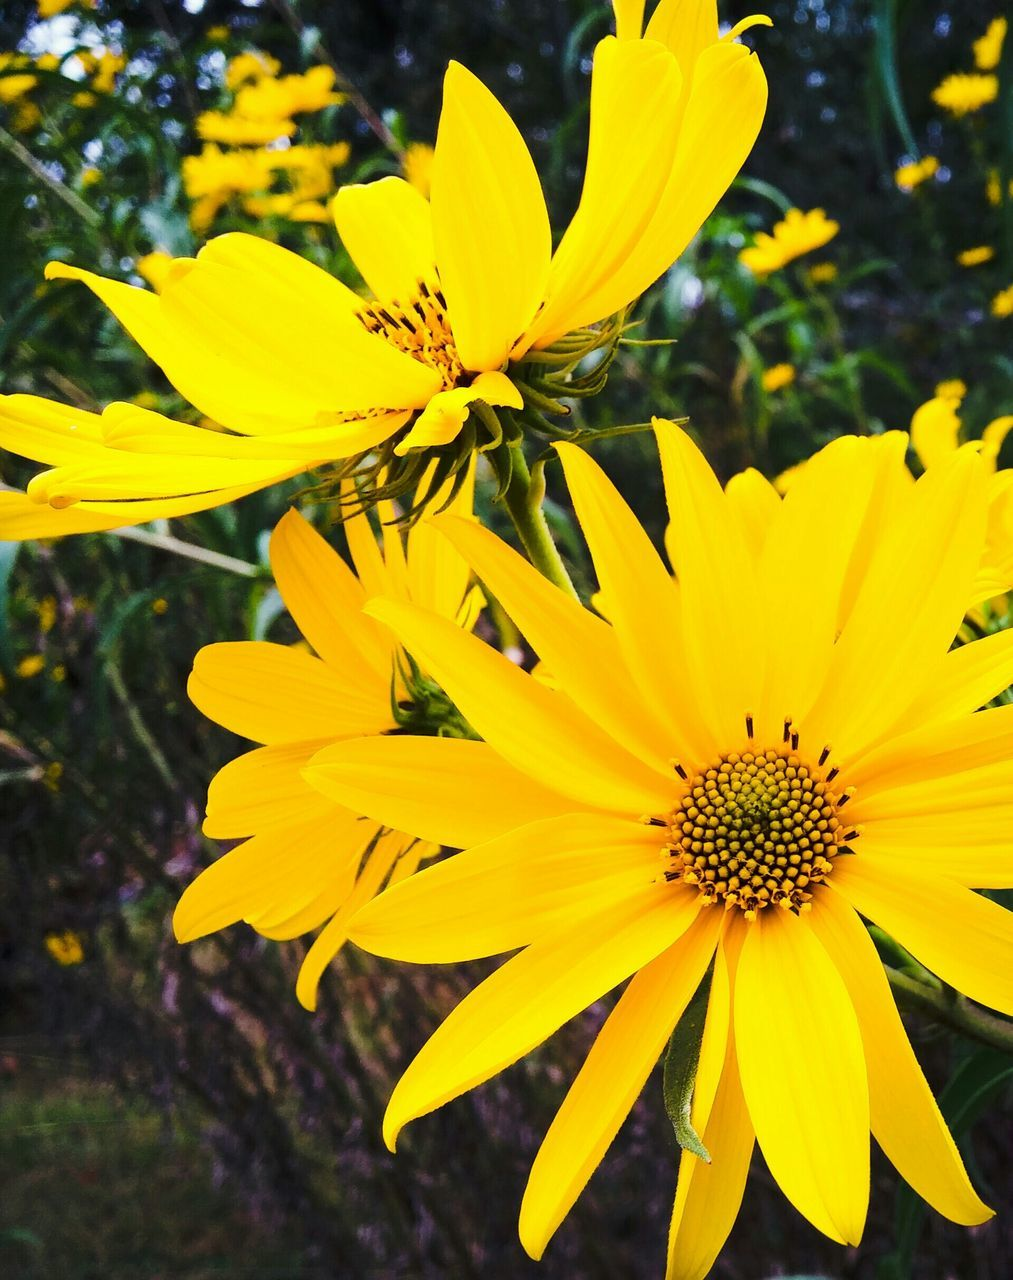 flower, yellow, petal, fragility, flower head, beauty in nature, growth, nature, freshness, outdoors, plant, no people, close-up, day, blooming, springtime, black-eyed susan